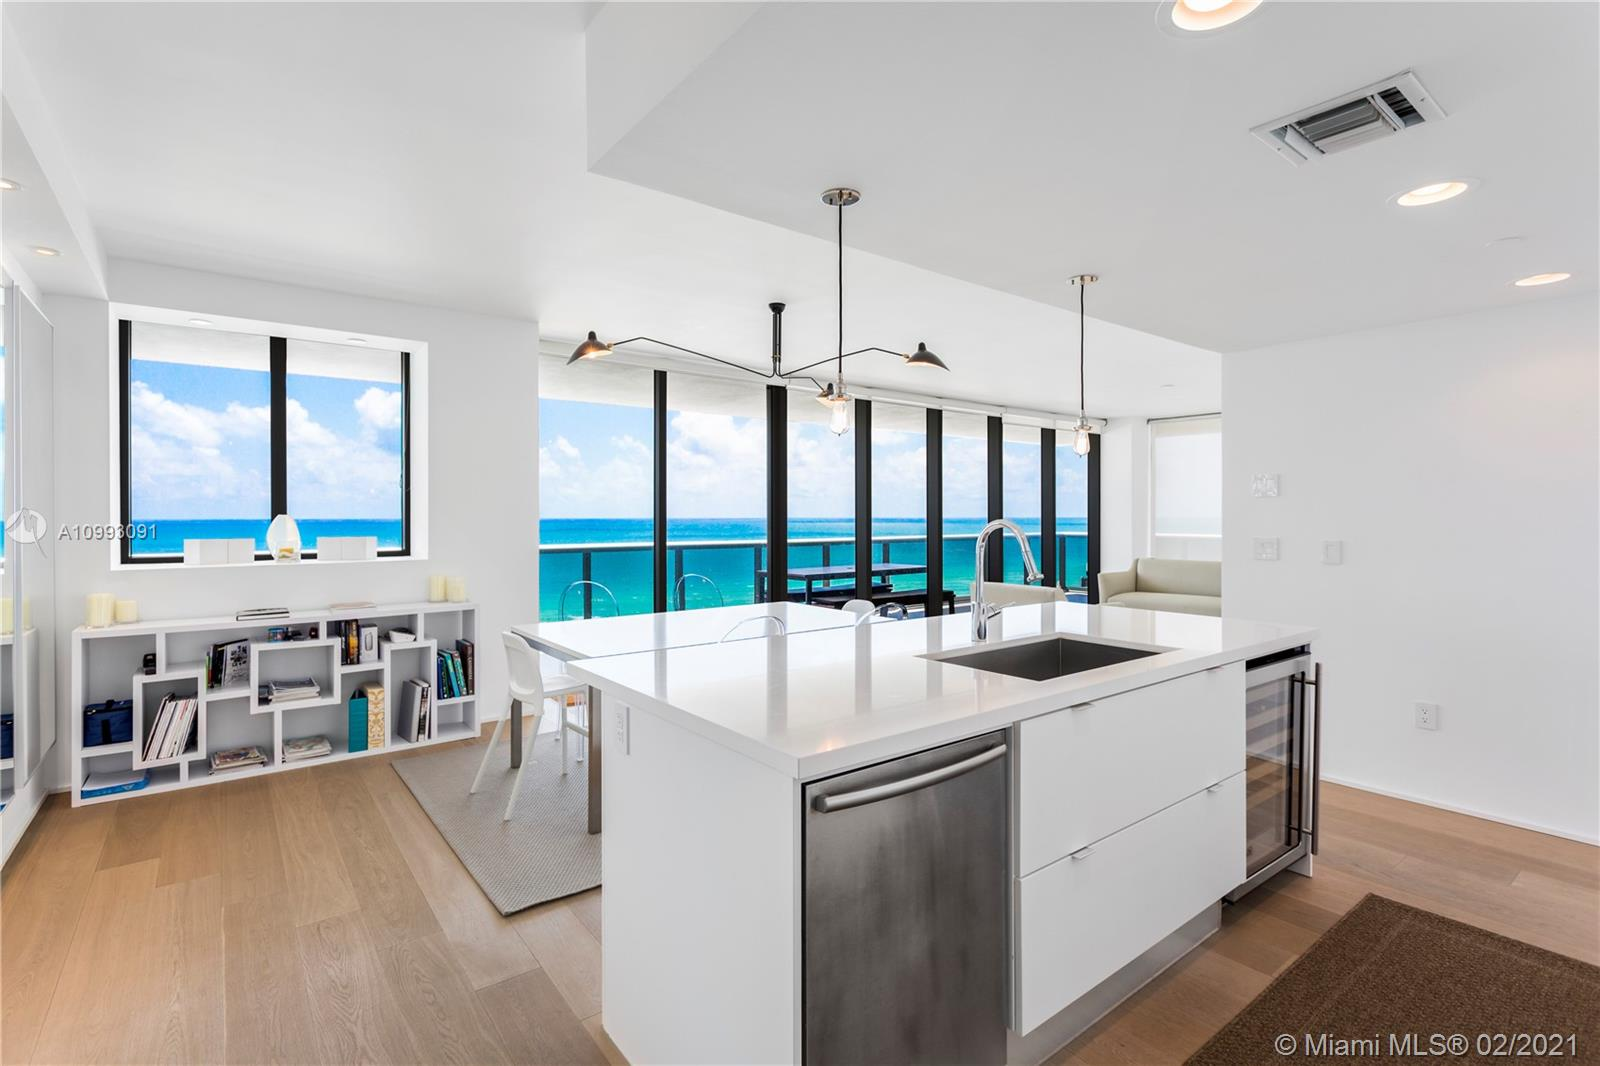 This renovated 3 bed/3.5 bath corner unit offers floor-to-ceiling glass, a flow through floor plan, and sleek, white interior. Sought after '02 line has direct ocean and downtown Miami skyline views from its oversized wrap around terrace, perfect for watching sunrises and sunsets. The Asian influenced boutique style, luxury building on Miami Beach's Millionaire's Row provides sophistication, tranquility, and a modern feel. Its amenities include spa, gym, 3 swimming pools, yoga room, Zen library, full beach service, valet, and concierge. Unit #1101 for sale next door provides the unique opportunity to combine 2 oceanfront, corners units to create a custom 3,050 SF residence. ASSESSMENT PAID IN FULL!